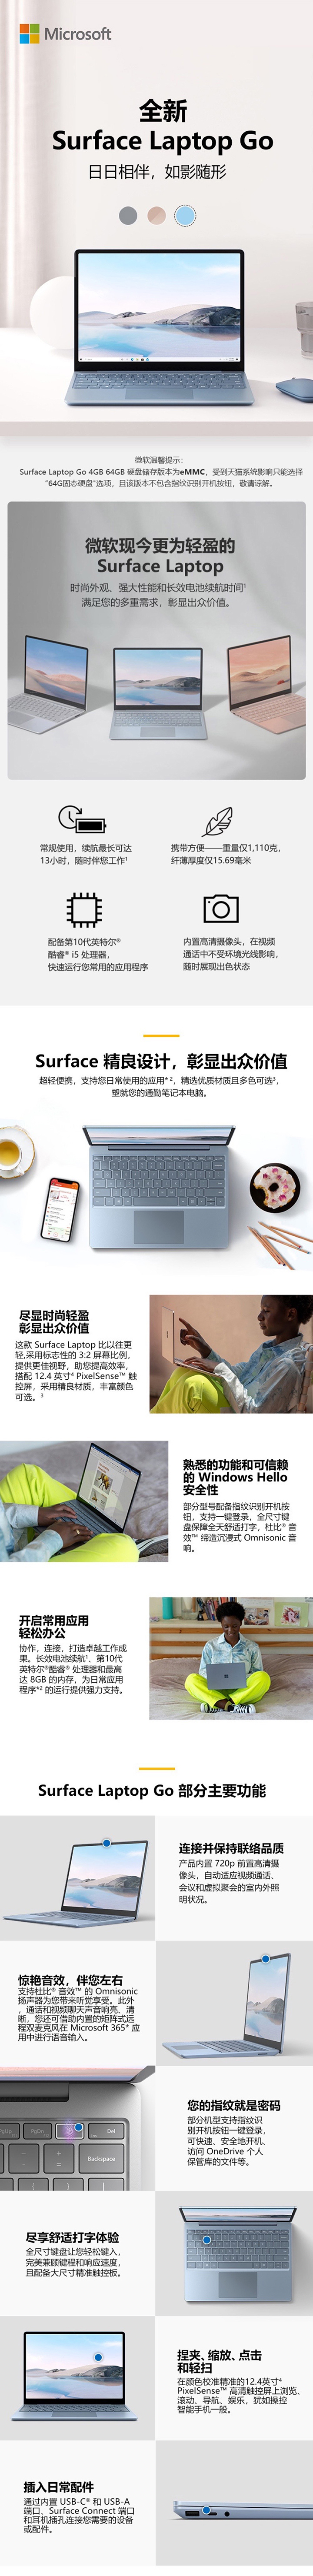 Surface Laptop Go免费试用,评测